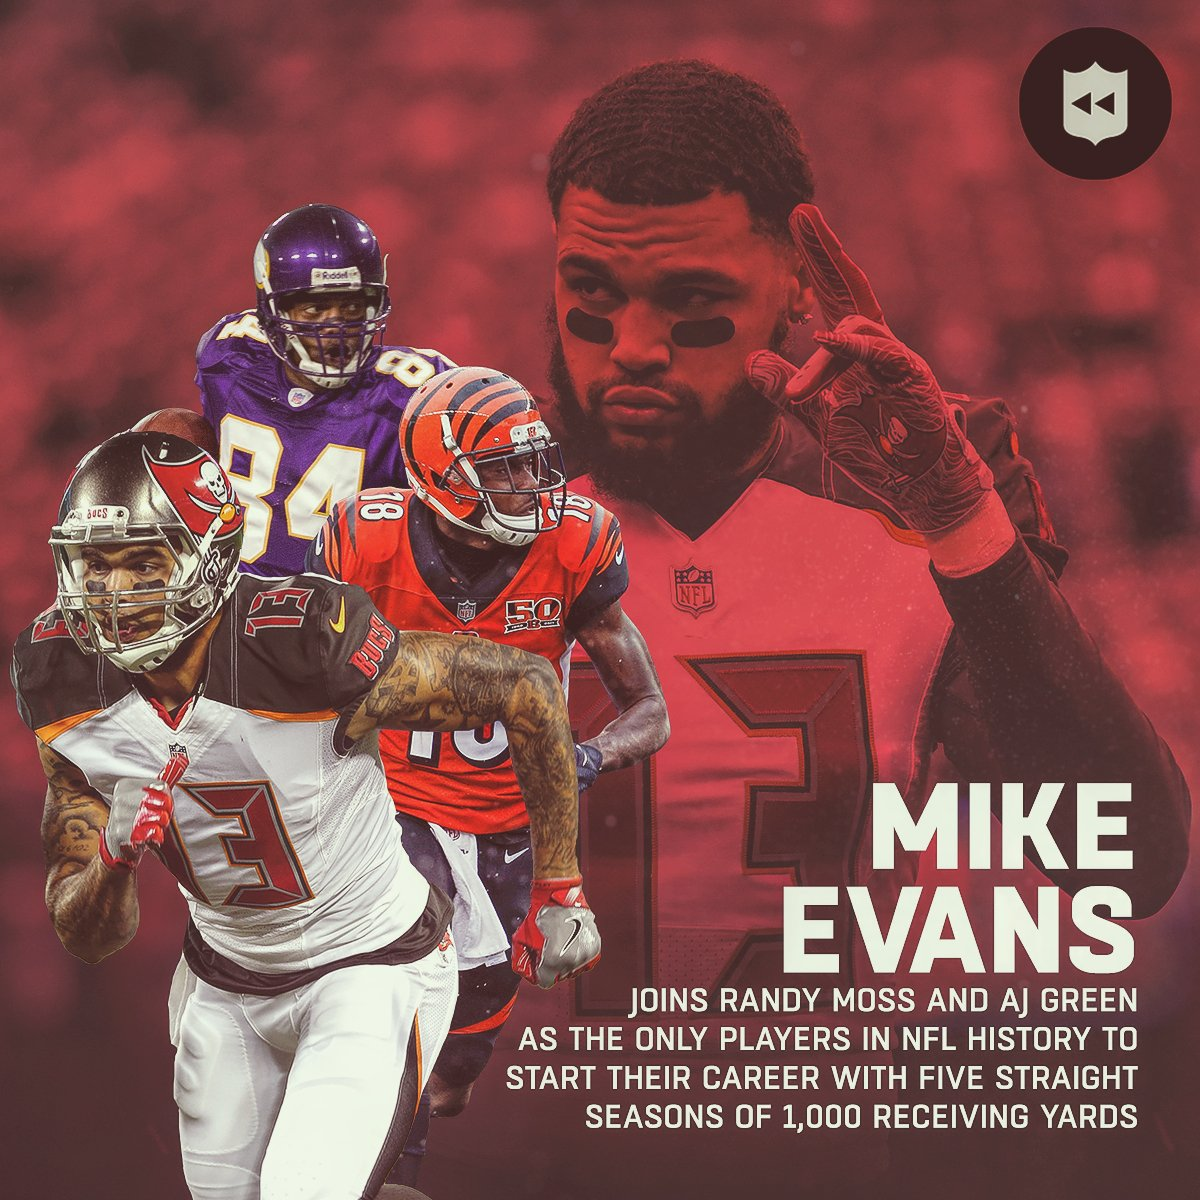 finest selection 650d2 7ecae NFL Throwback on Twitter: